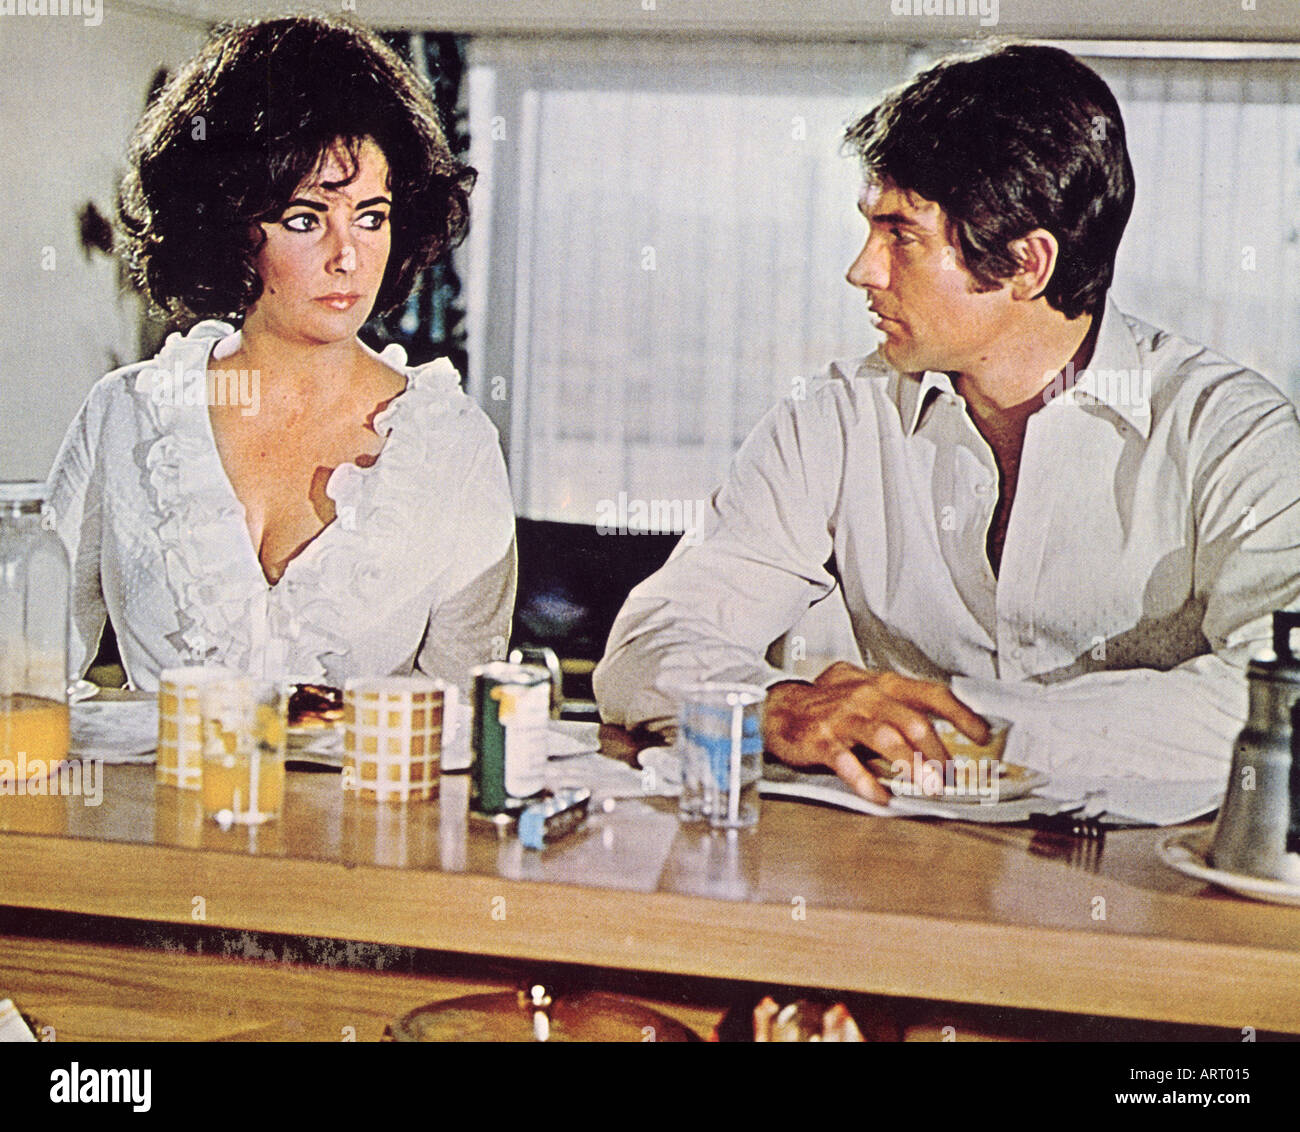 THE ONLY GAME IN TOWN 1969 film with Elizabeth Taylor and Warren Beatty - Stock Image